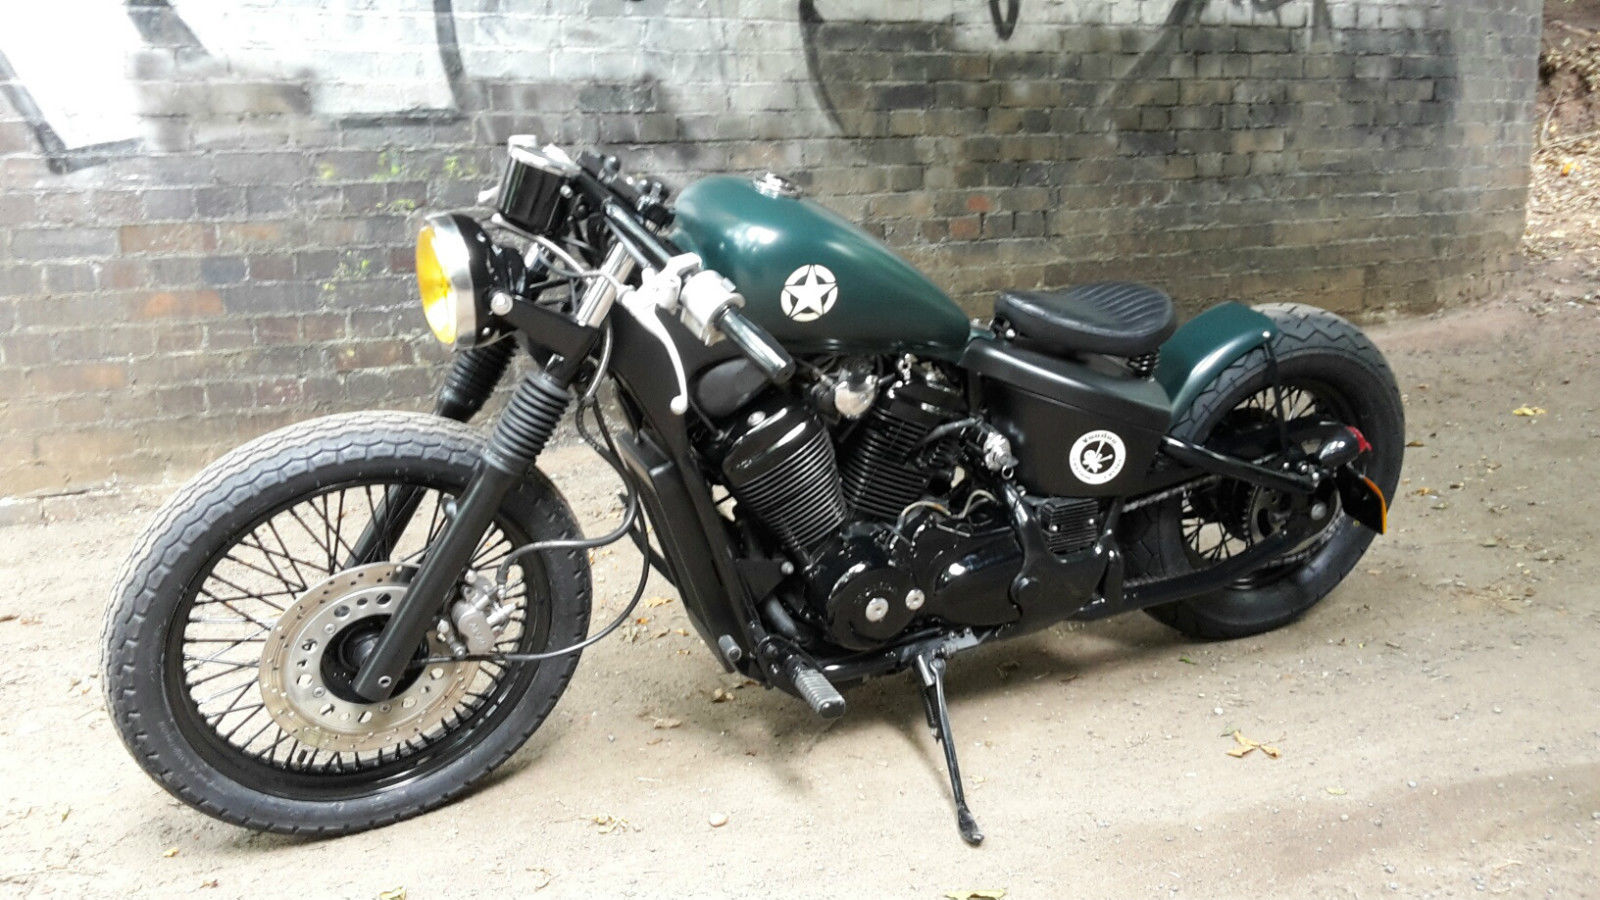 Honda Vt 400 Vt 600 Bobber Custom Steed Shadow The Forty